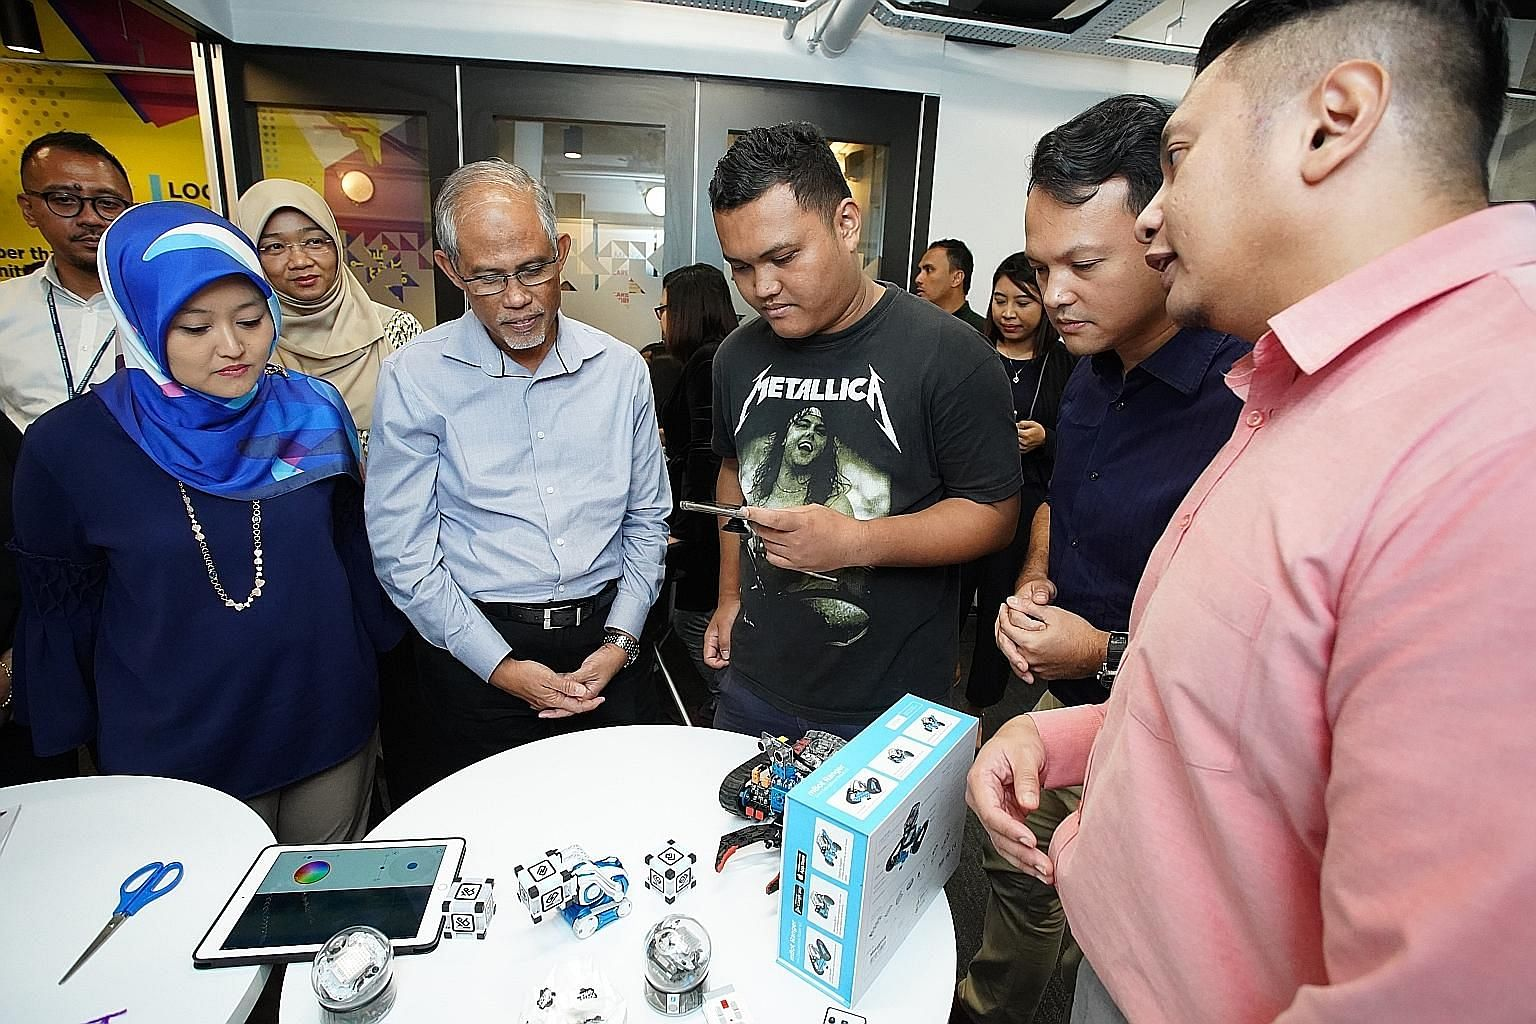 Minister-in-charge of Muslim Affairs and Mendaki chairman Masagos Zulkifli at a robotics booth at the launch of the satellite centre in Jurong yesterday. With him are (from left) MP for Jurong GRC Rahayu Mahzam, ITE College West student Zulkarnaien S. Idr